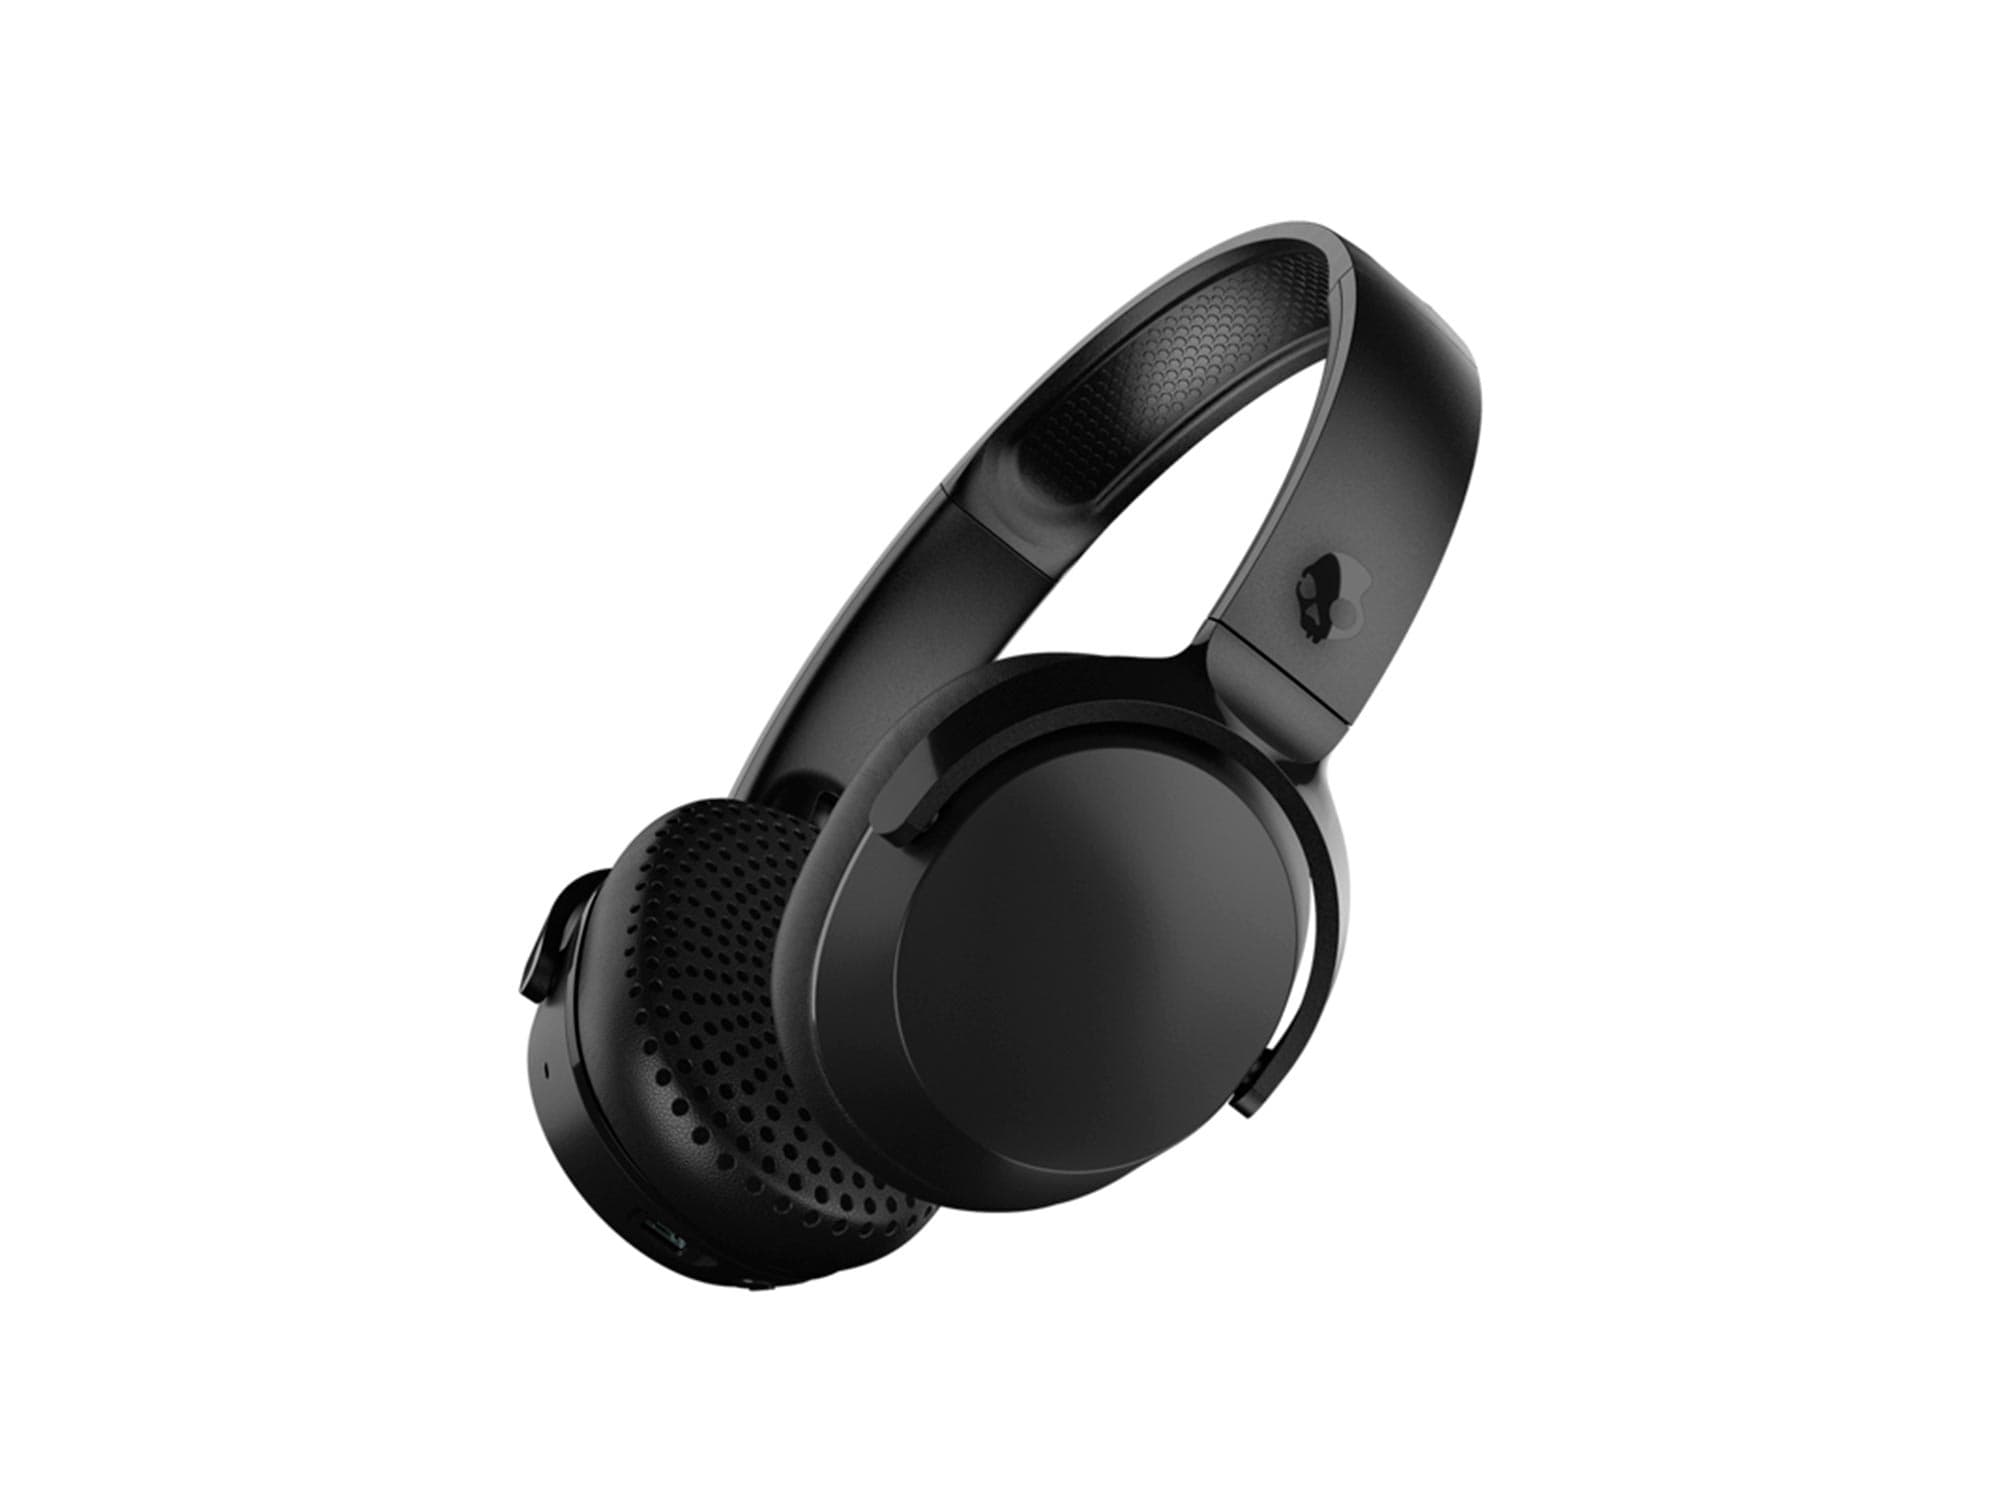 Audifonos Skullcandy Riff Wireless On-Ear Hombre Negro